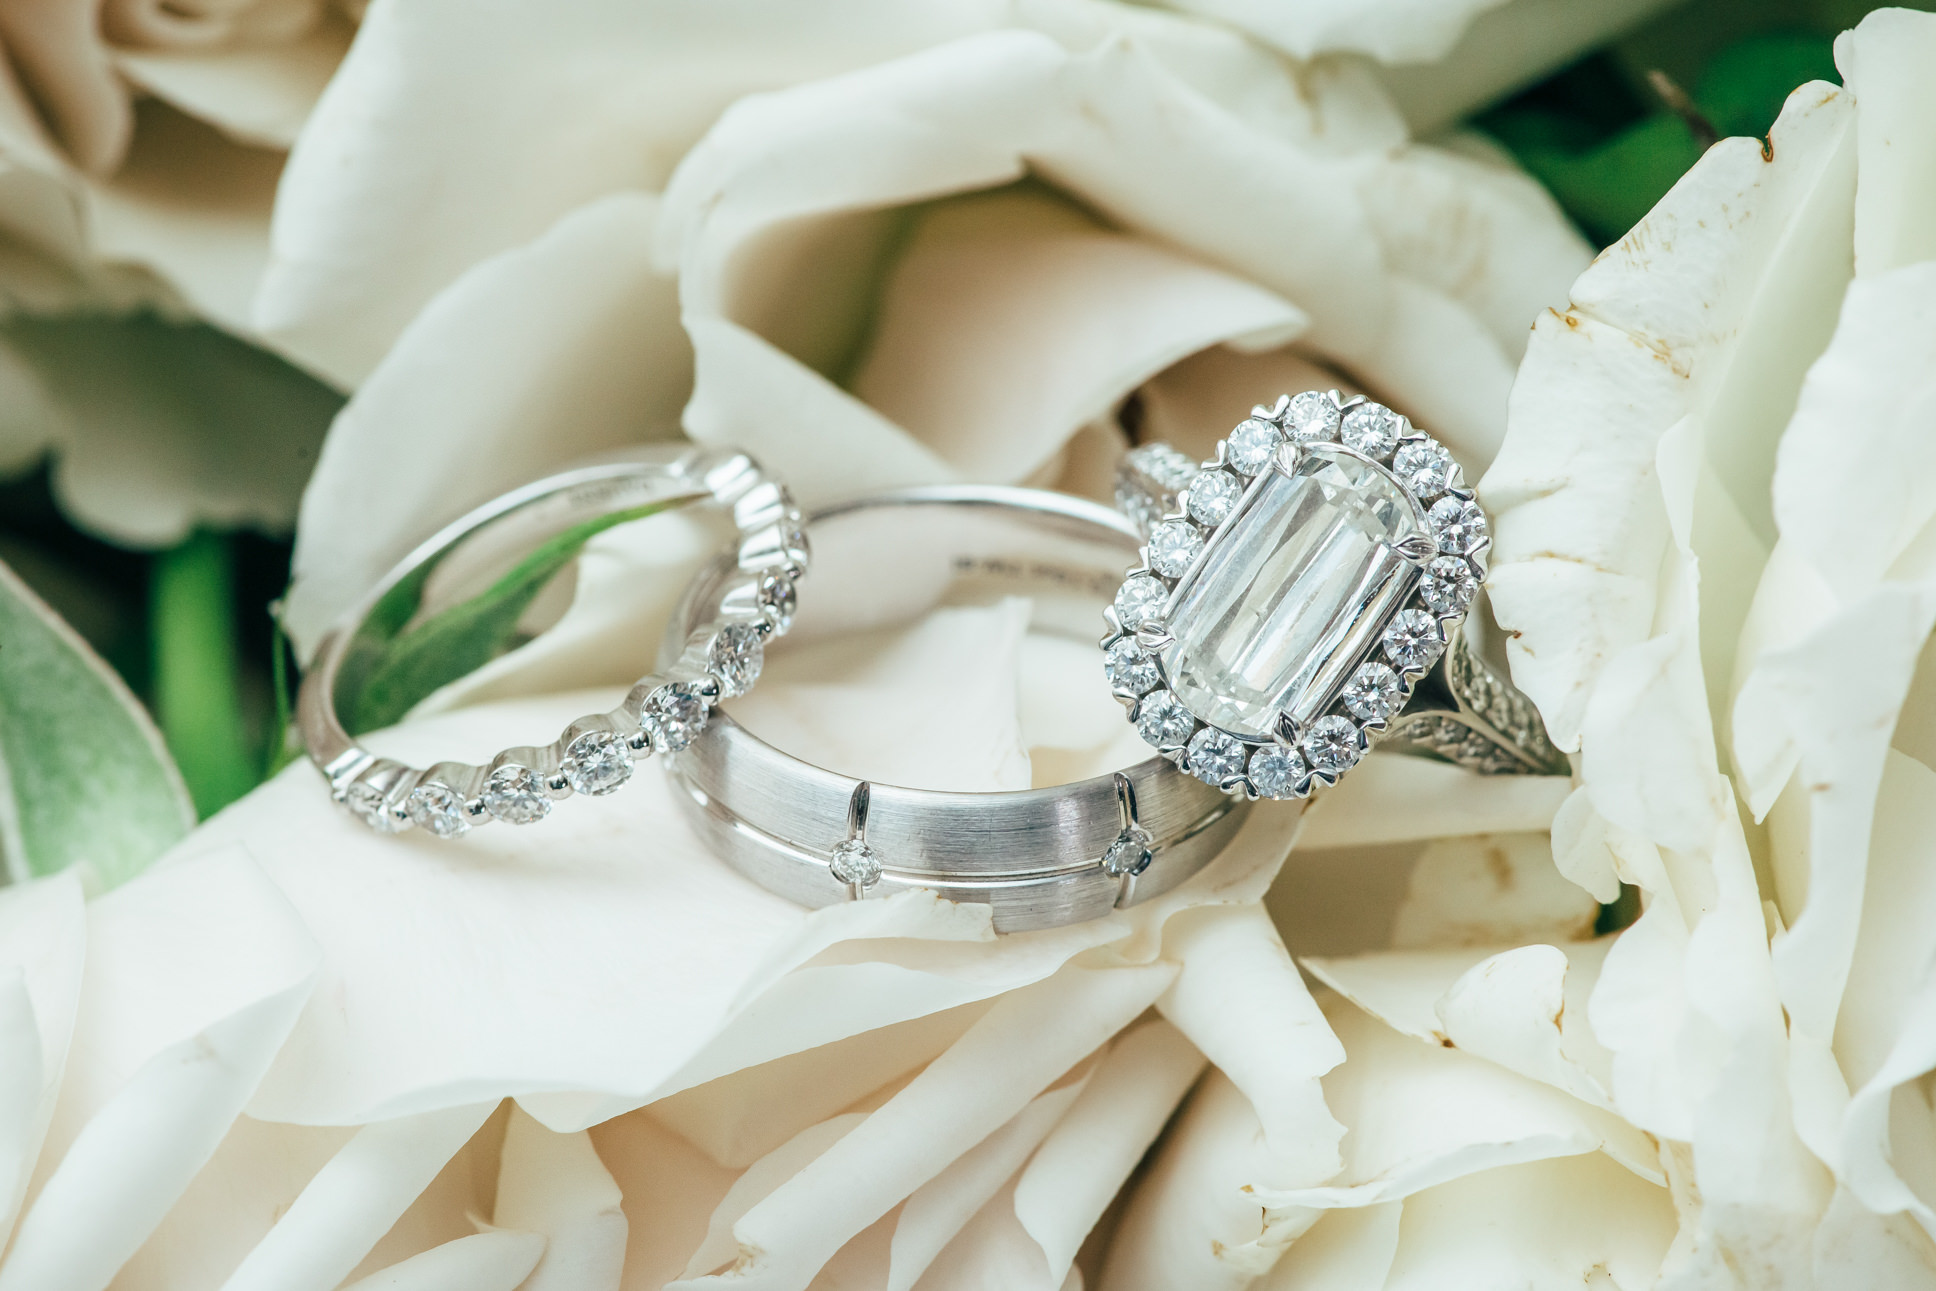 Cushion Cut Halo Diamond Engagement Ring and Bride and Groom Wedding Bands